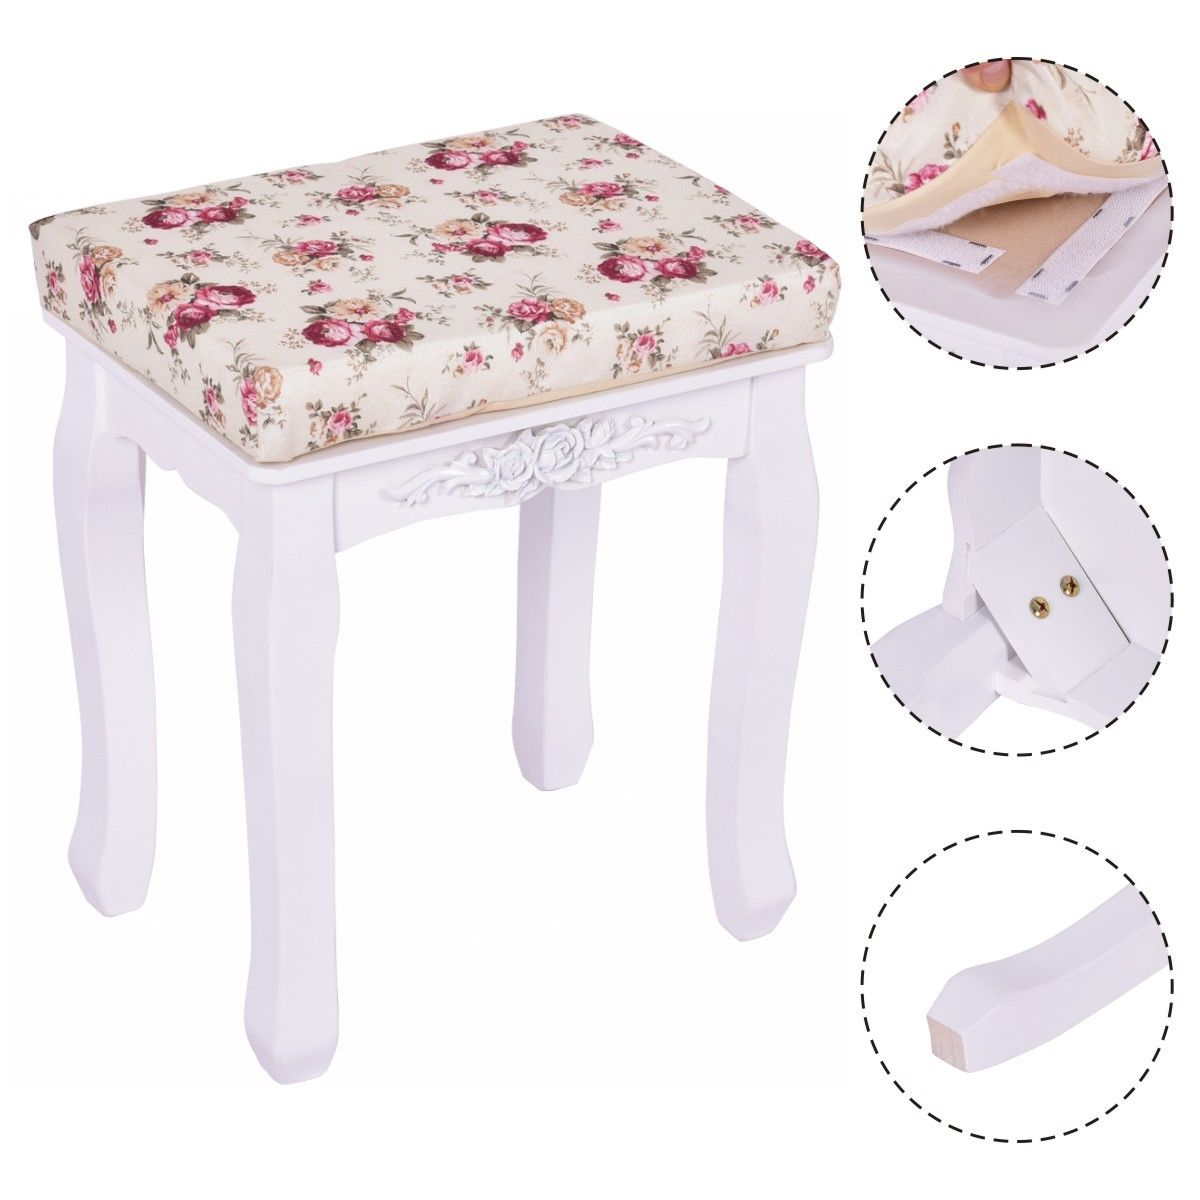 Costway White Vanity Wood Dressing Stool Padded Chair Makeup Piano Seat  With Cushion